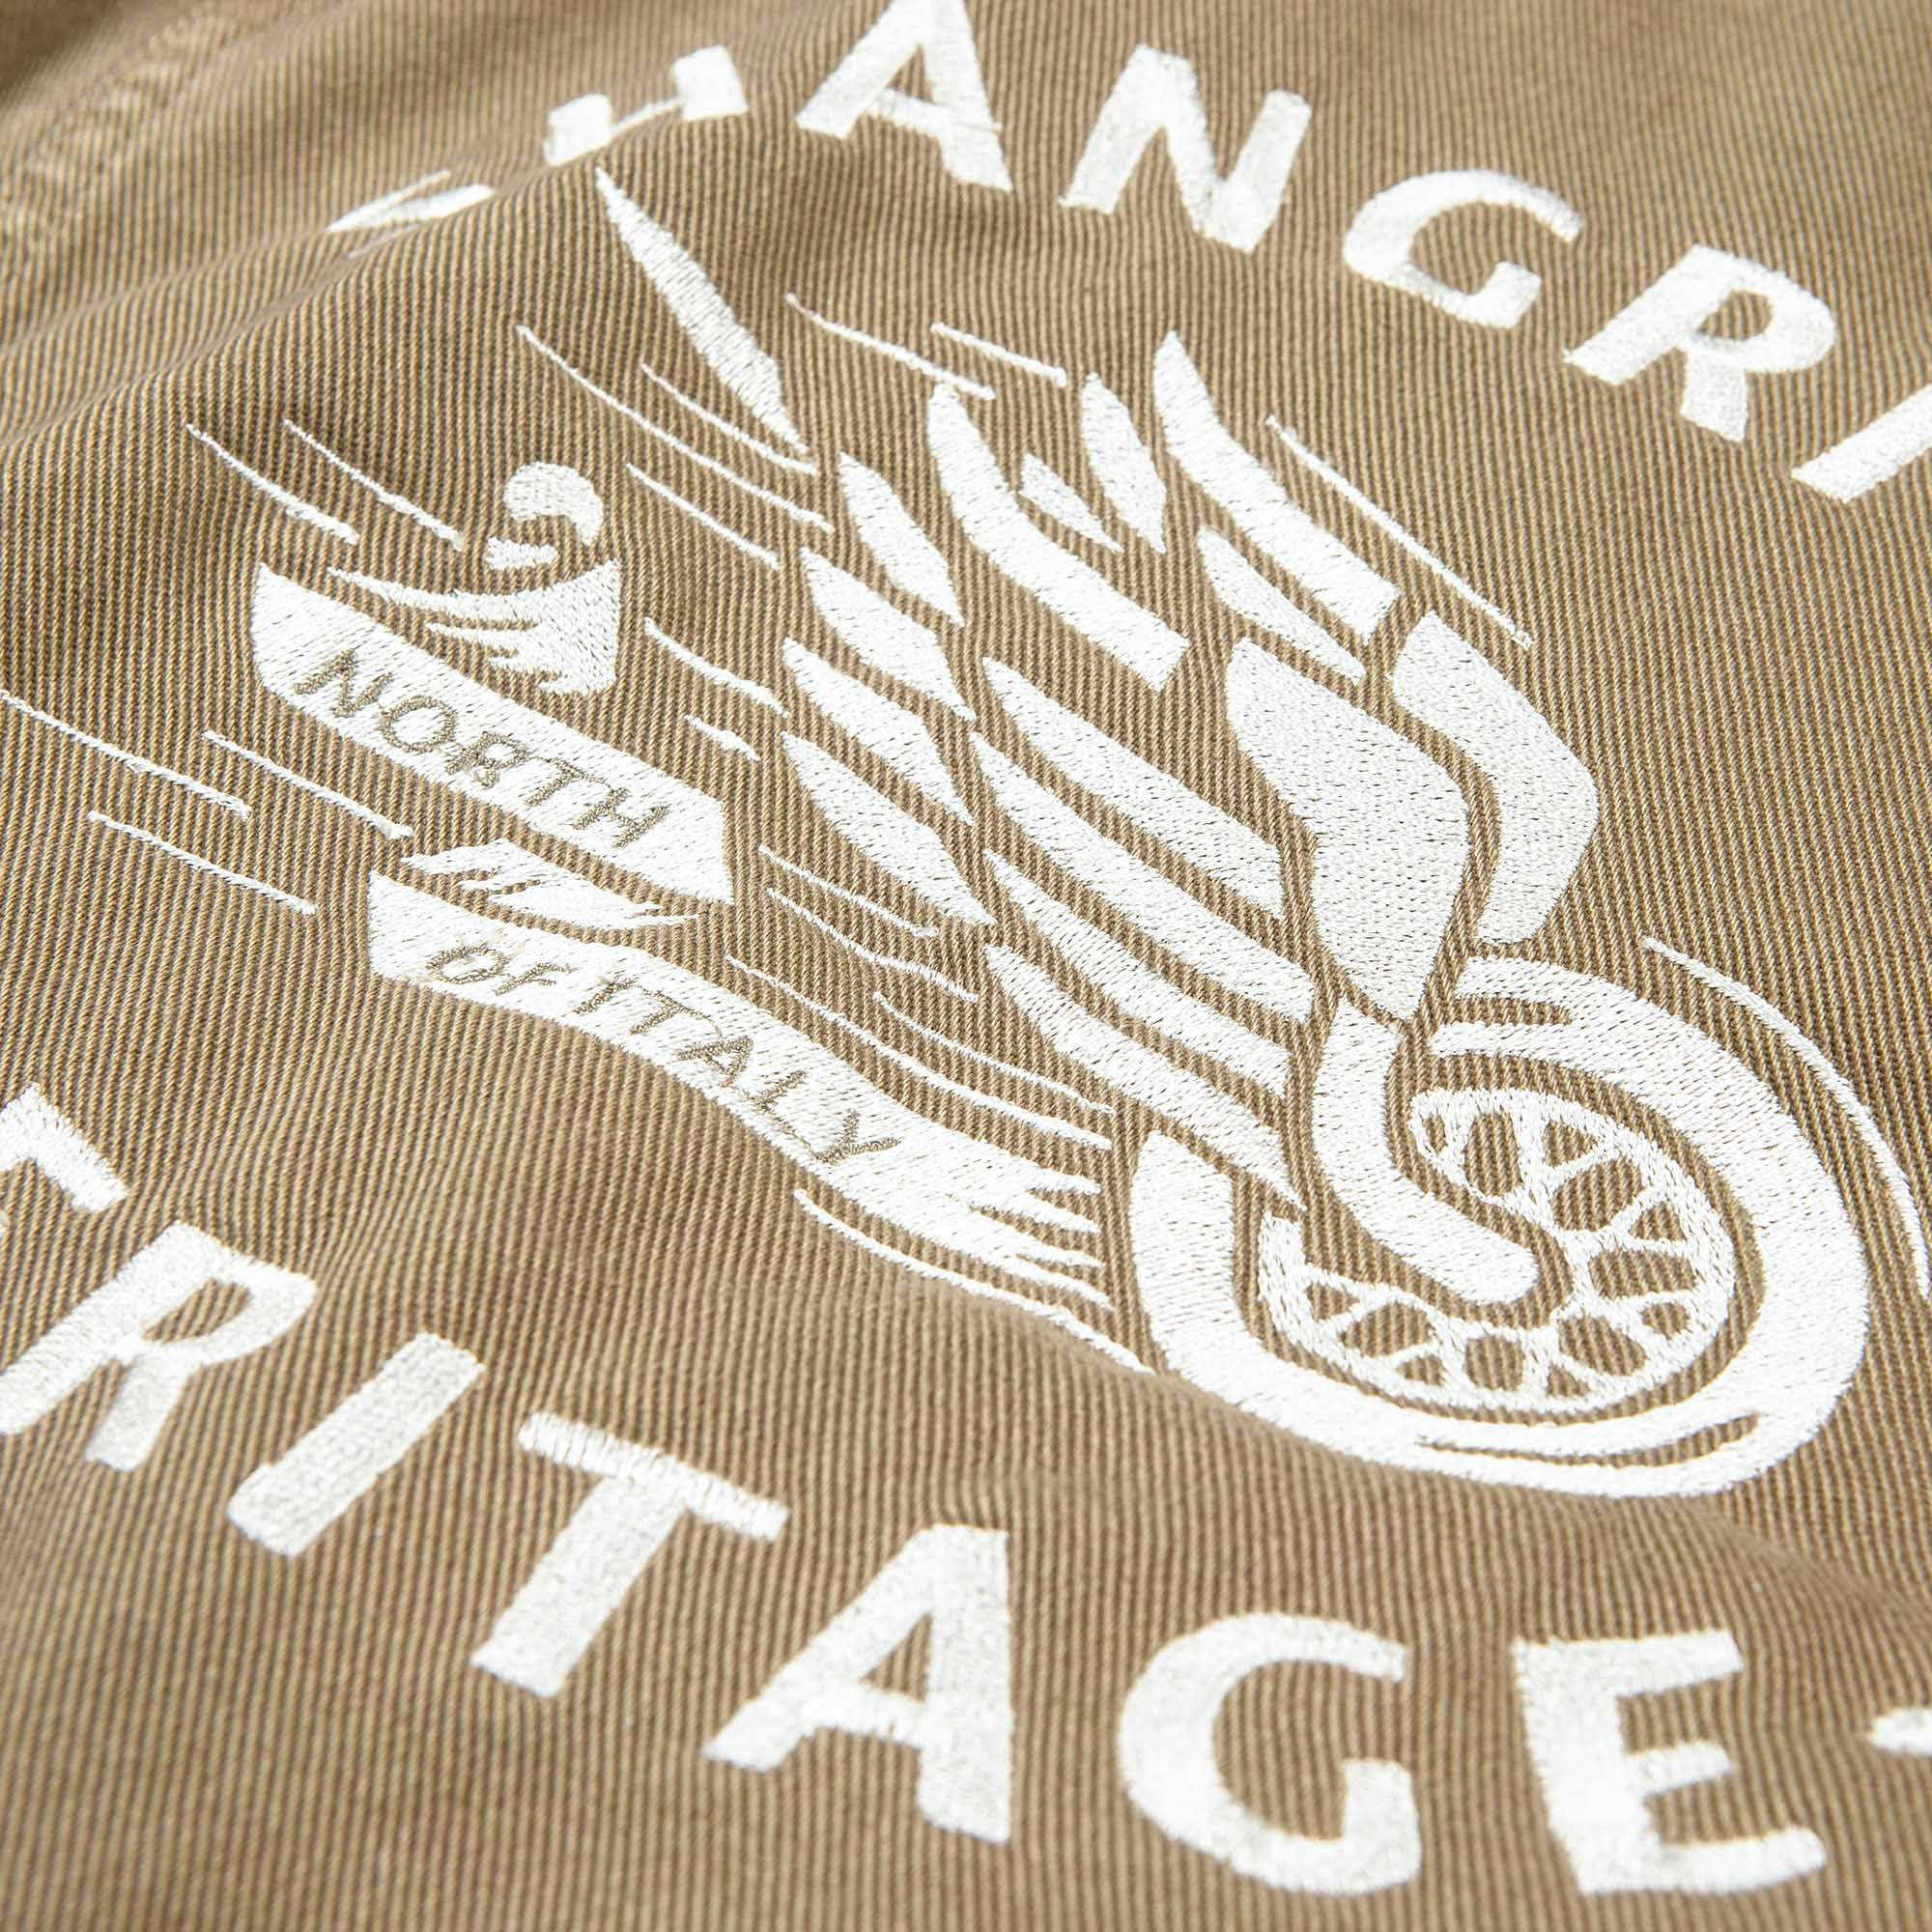 shangri-la-heritage-new-single-rider-winged-wheel-army-green-canvas-jacket-still-life-ebroidery-detail